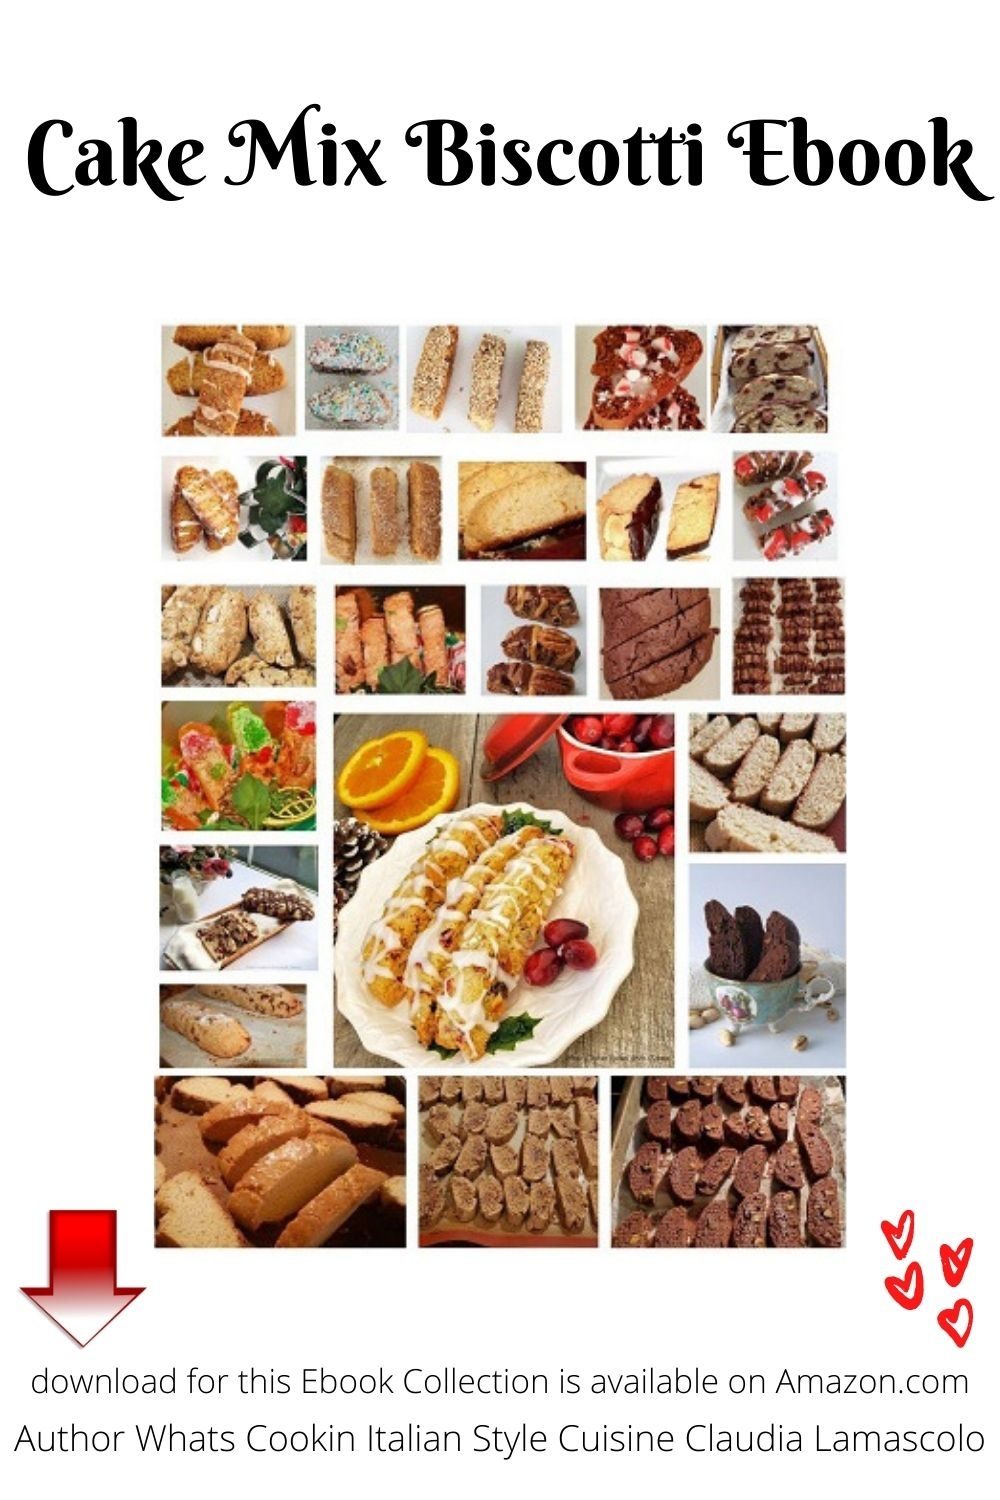 25 downloadable recipes for cake mix biscotti ebook available for sale on Amazon .com